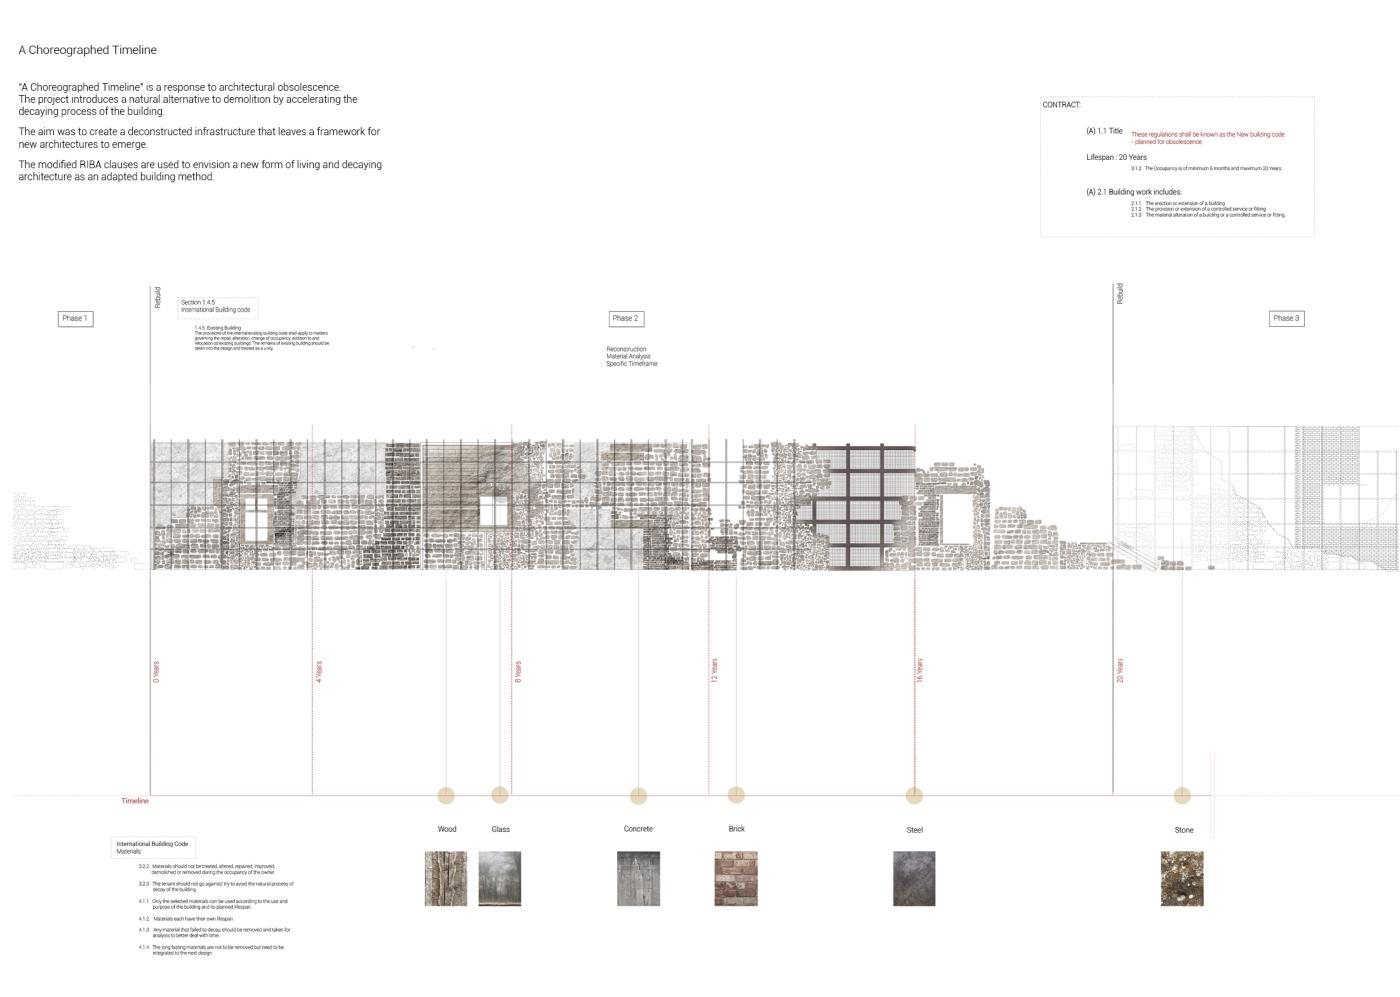 Presidents Medals A Choreographed Timeline Rewriting Riba Building